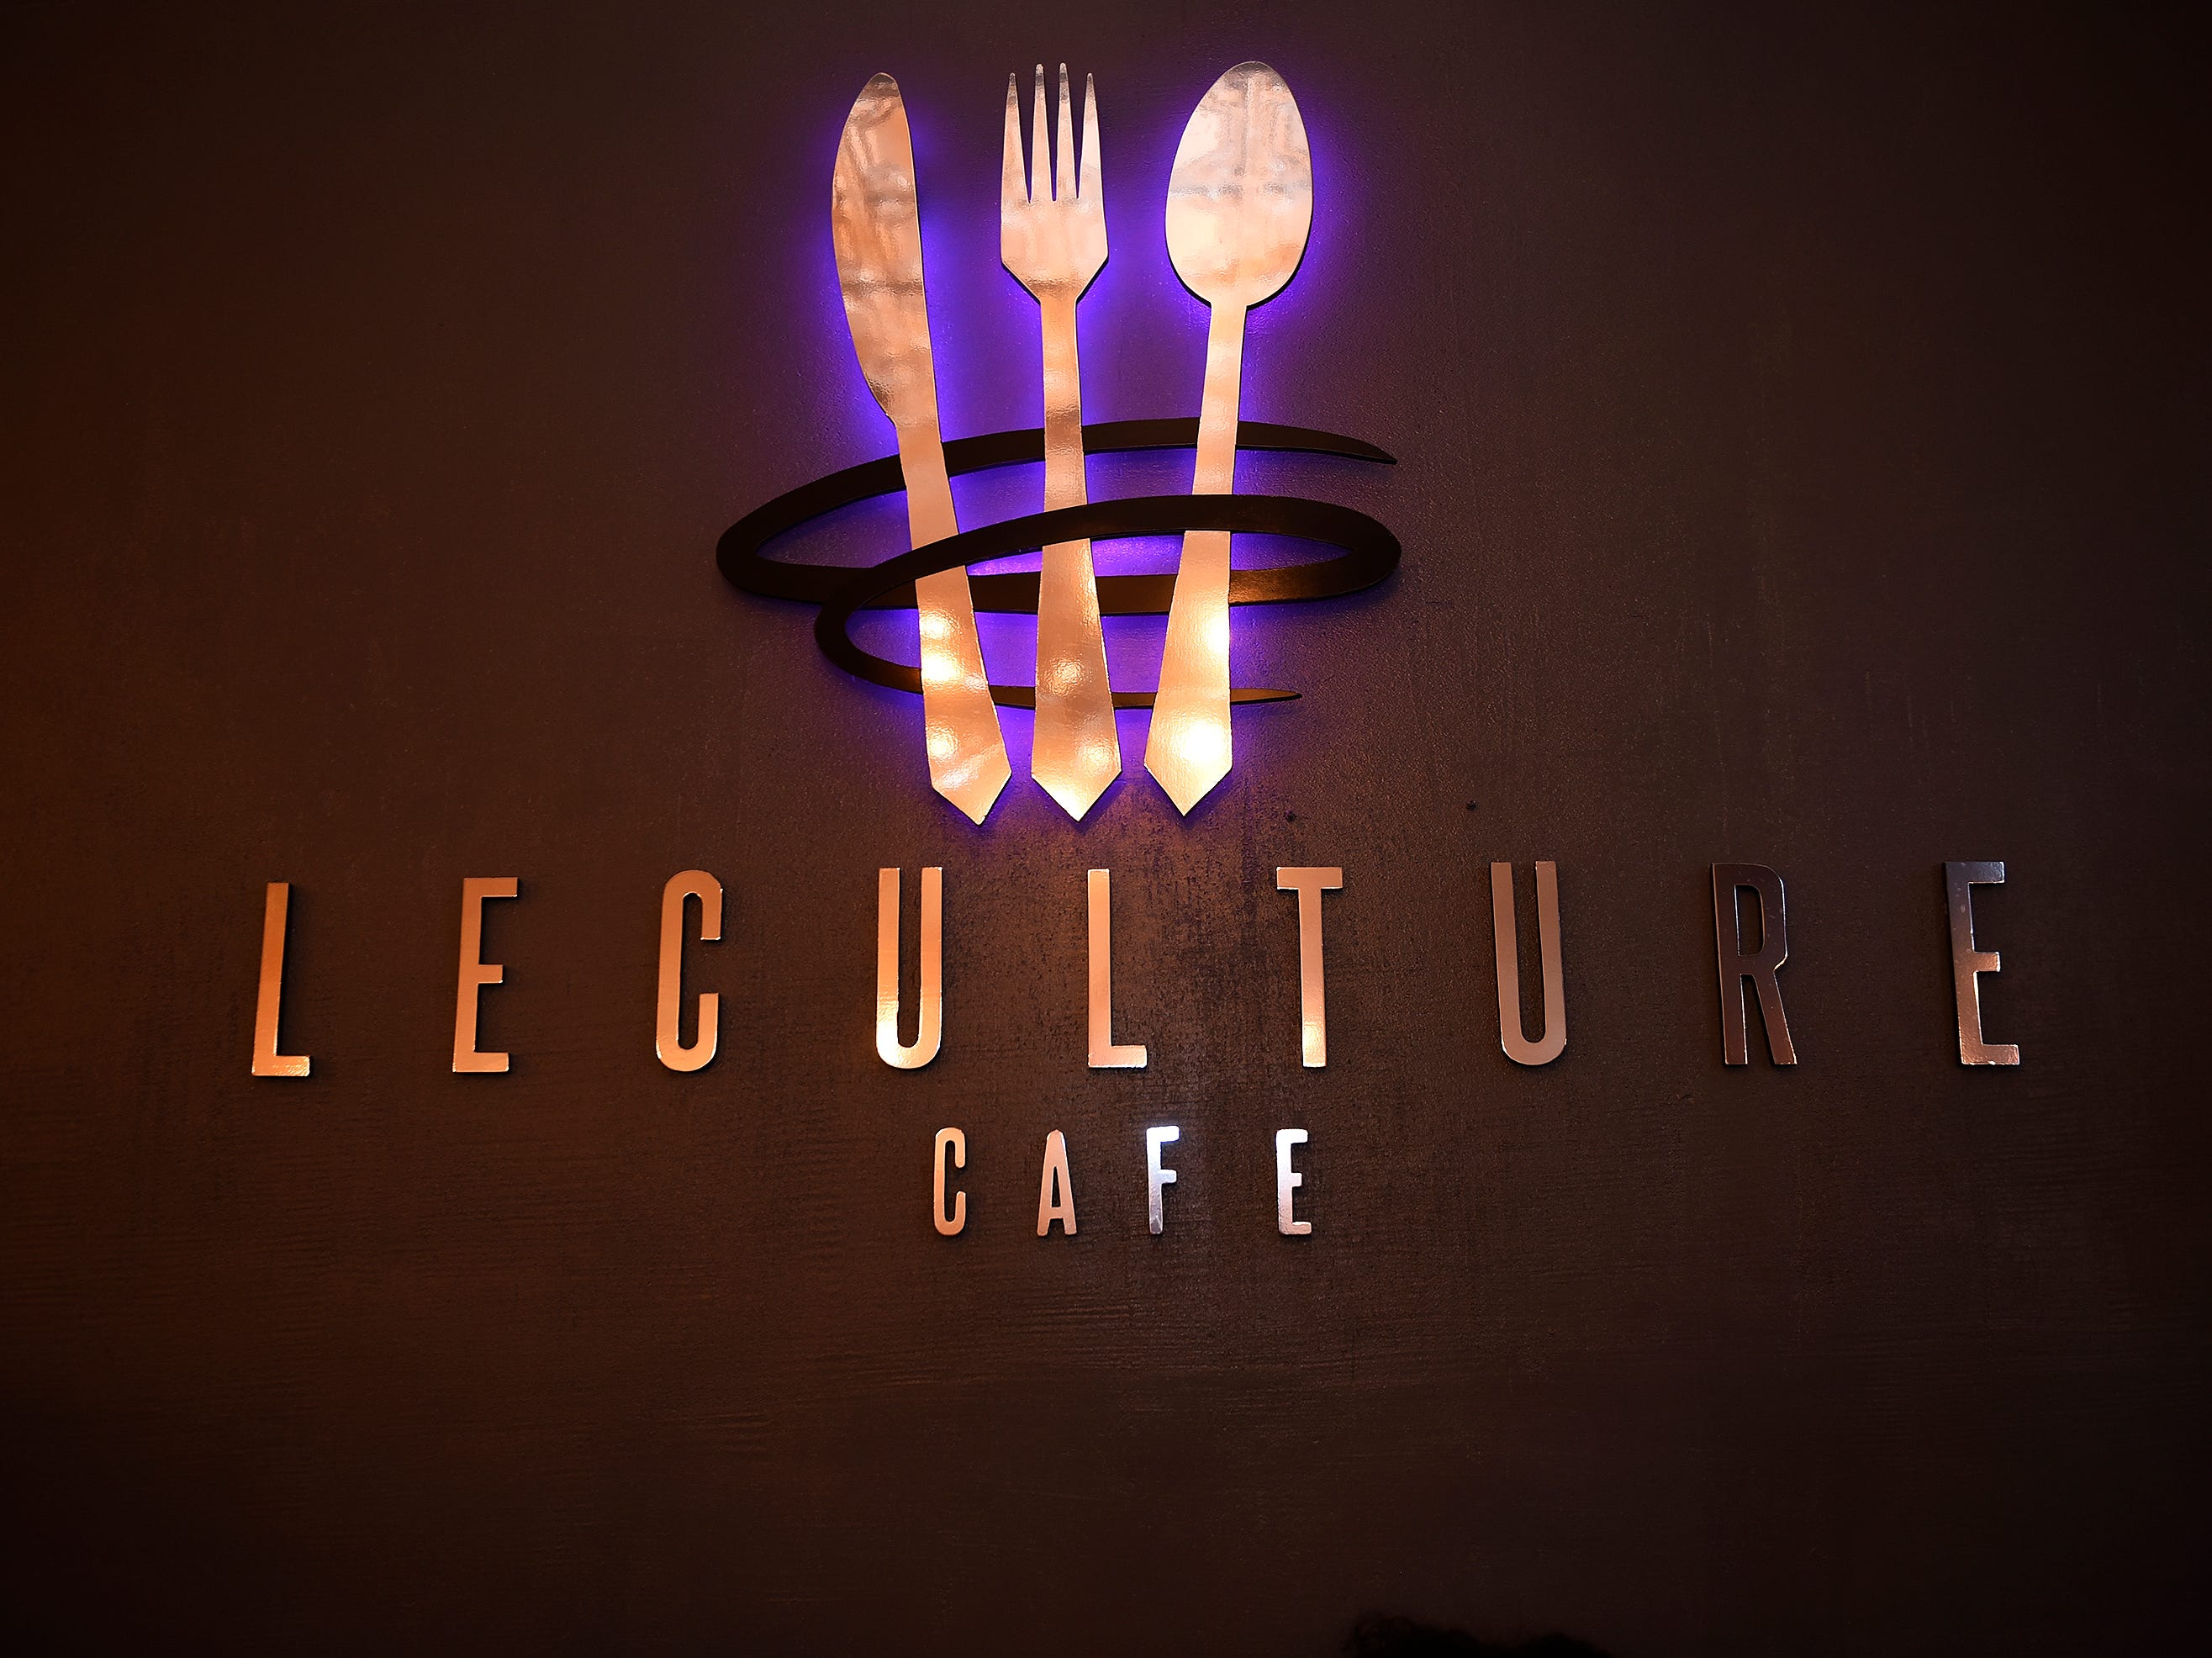 The restaurant logo is on the wall in dining area.